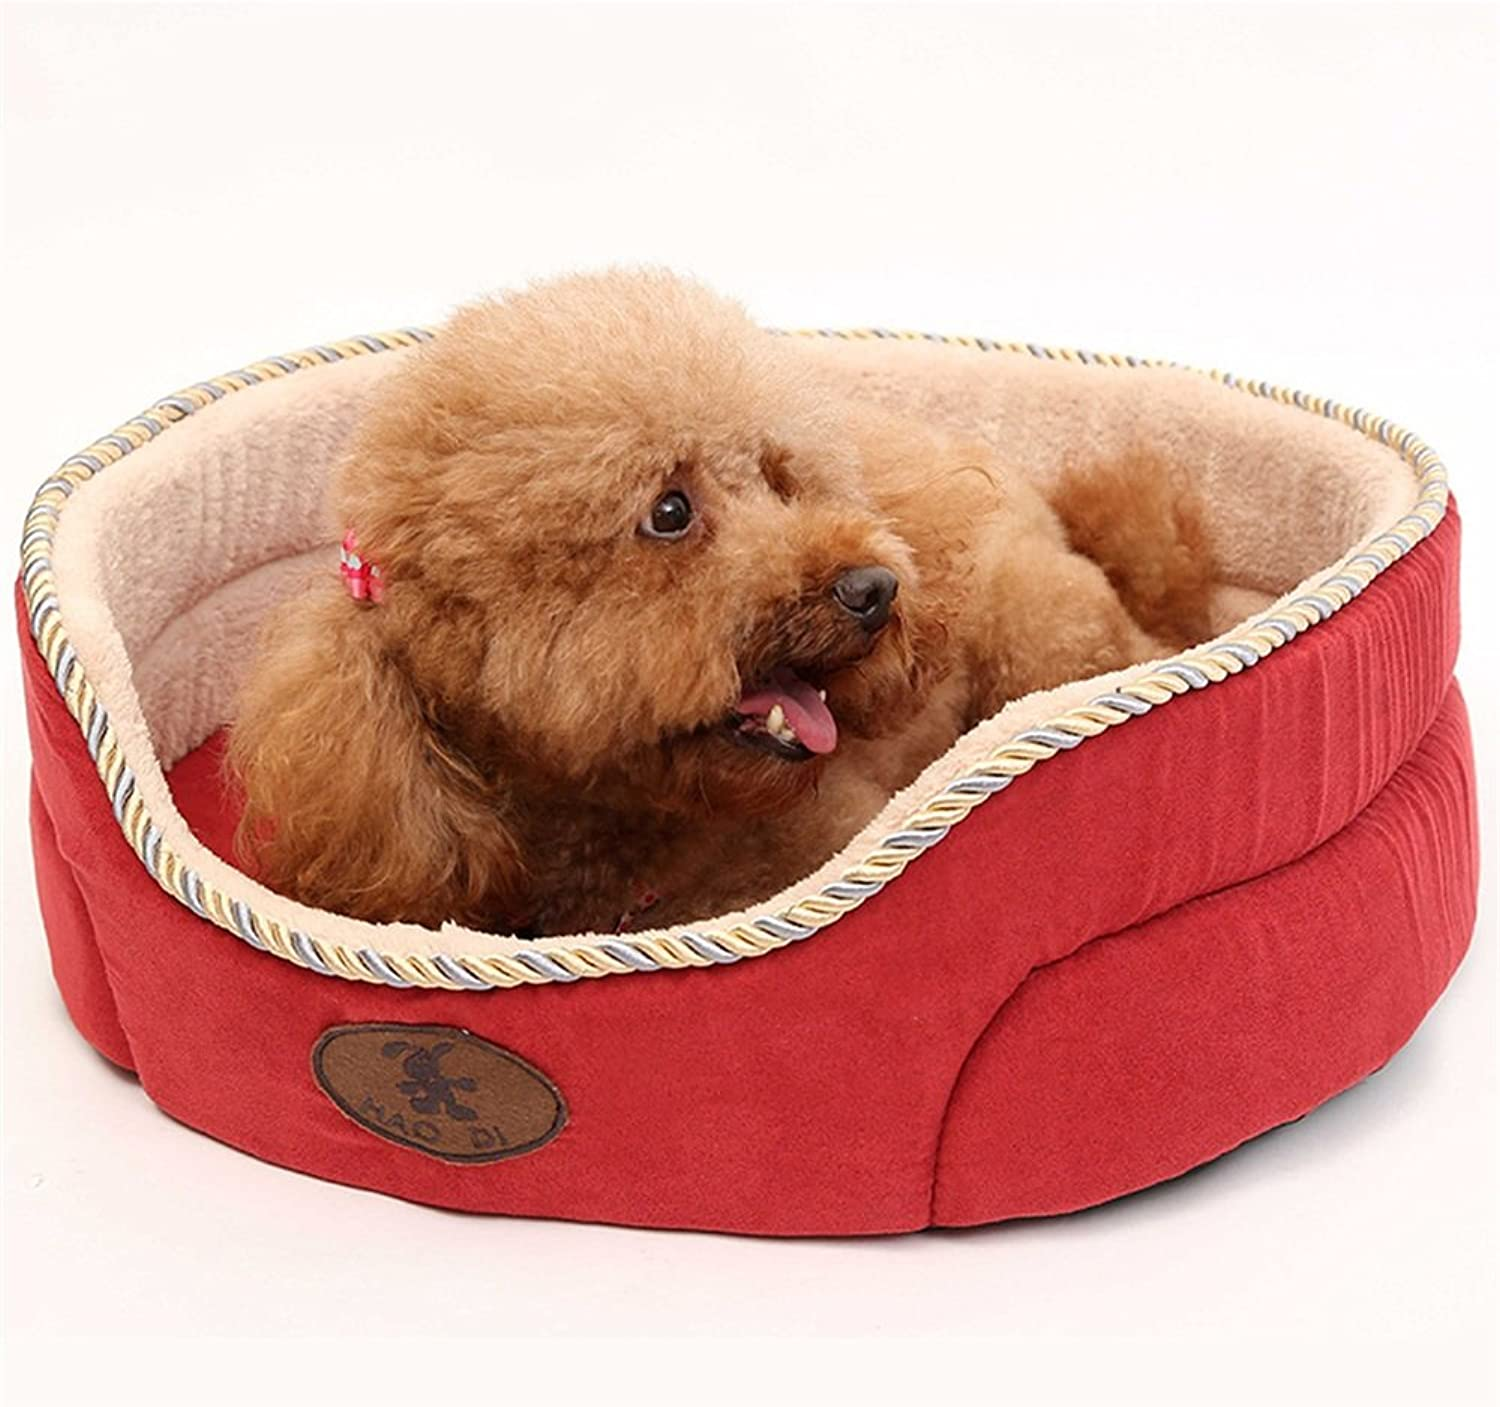 Liuxiaoqing Pet Bed for Cats Small Dogs Suede Washable Kennel Round Nest Cat Litter Pet Supplies Small And Mediumsized Dogs Spring And Autumn Use Soft Comfy Washable (color   Red, Size   S)